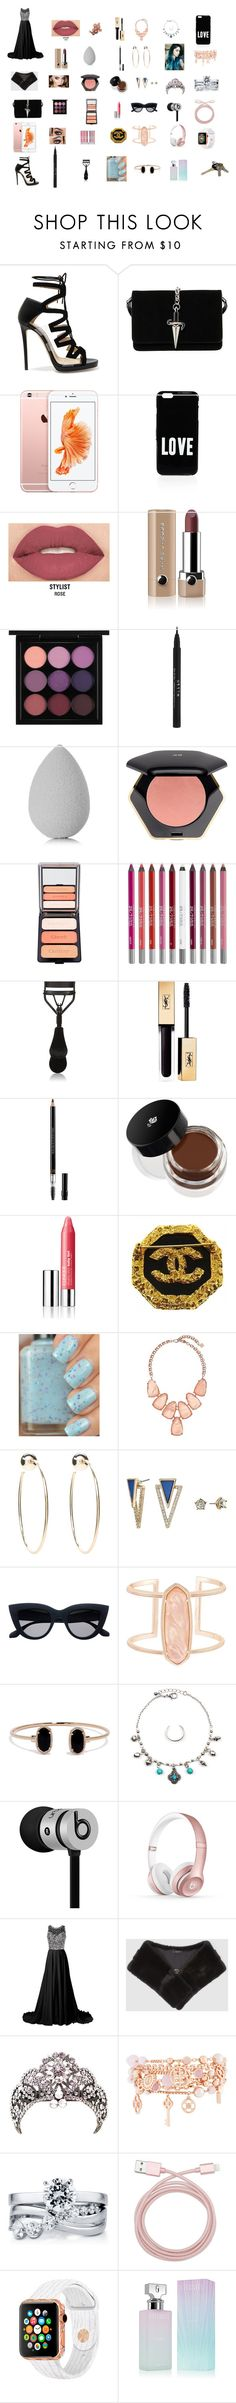 """""""My Anniversary With My Boyfriend"""" by remiwindsor on Polyvore featuring Jimmy Choo, Cesare Paciotti, Givenchy, Smashbox, Marc Jacobs, MAC Cosmetics, Stila, beautyblender, H&M and CARGO"""